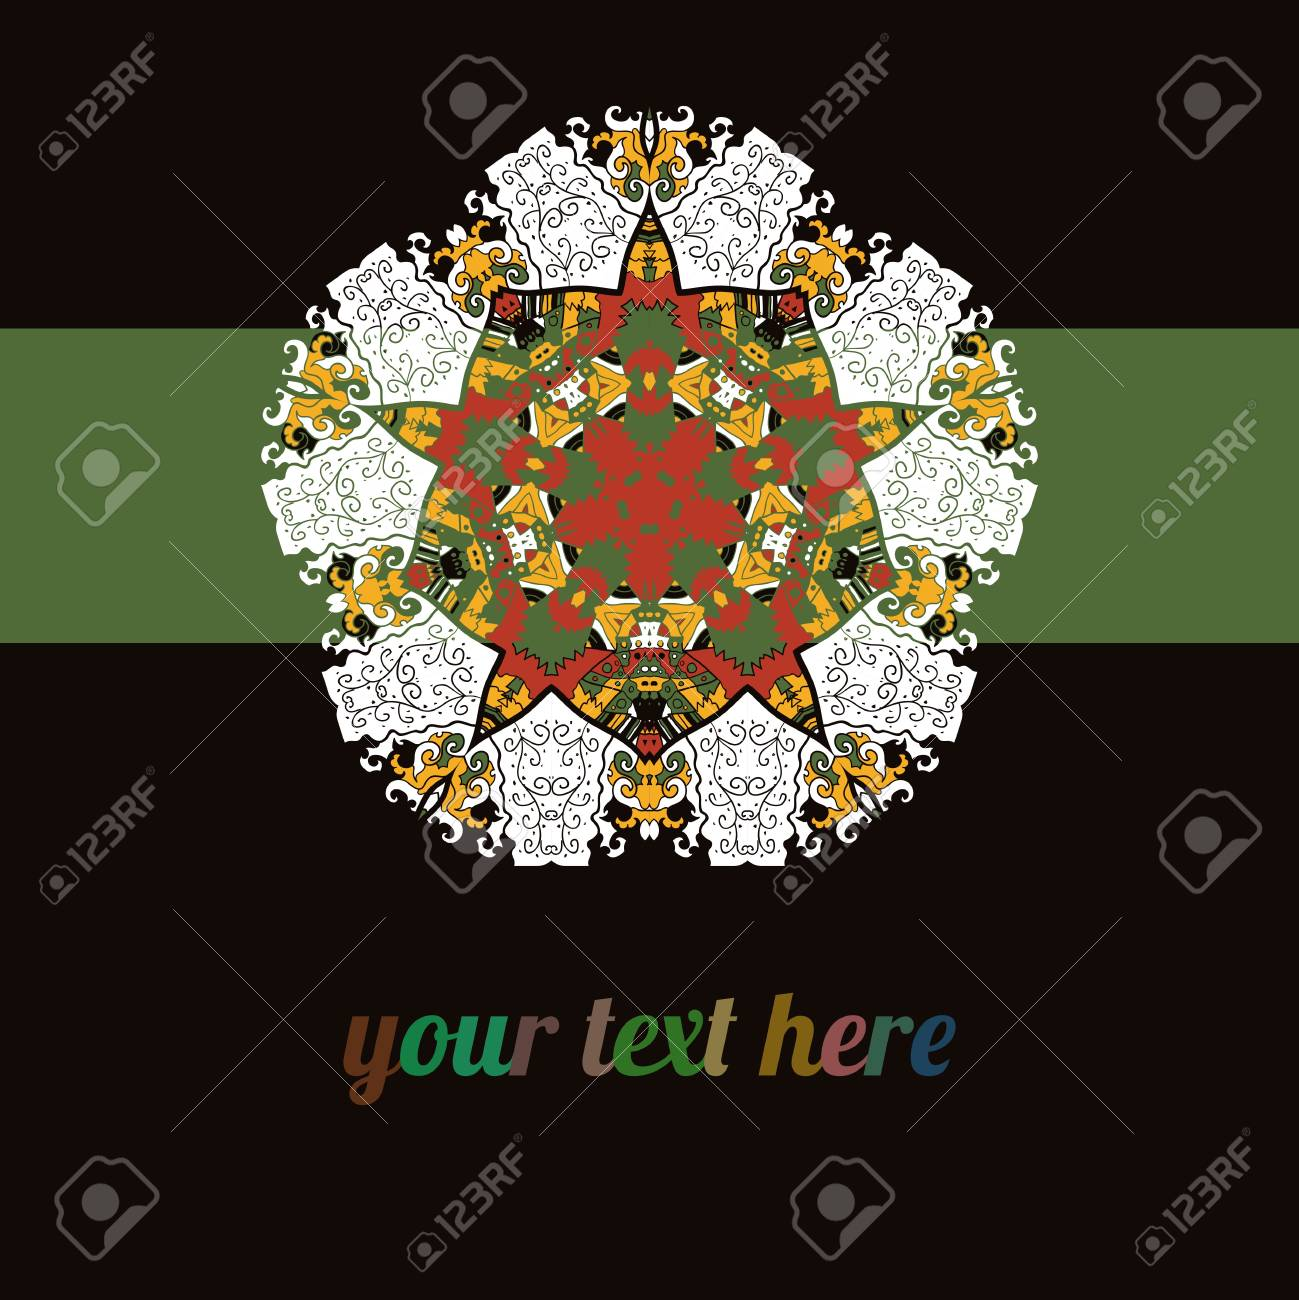 Black Brown Green  ornate frame with sample text  Perfect as invitation or announcement  Background pattern is included as seamless  All pieces are separate  Easy to change colors and edit Stock Vector - 18471754